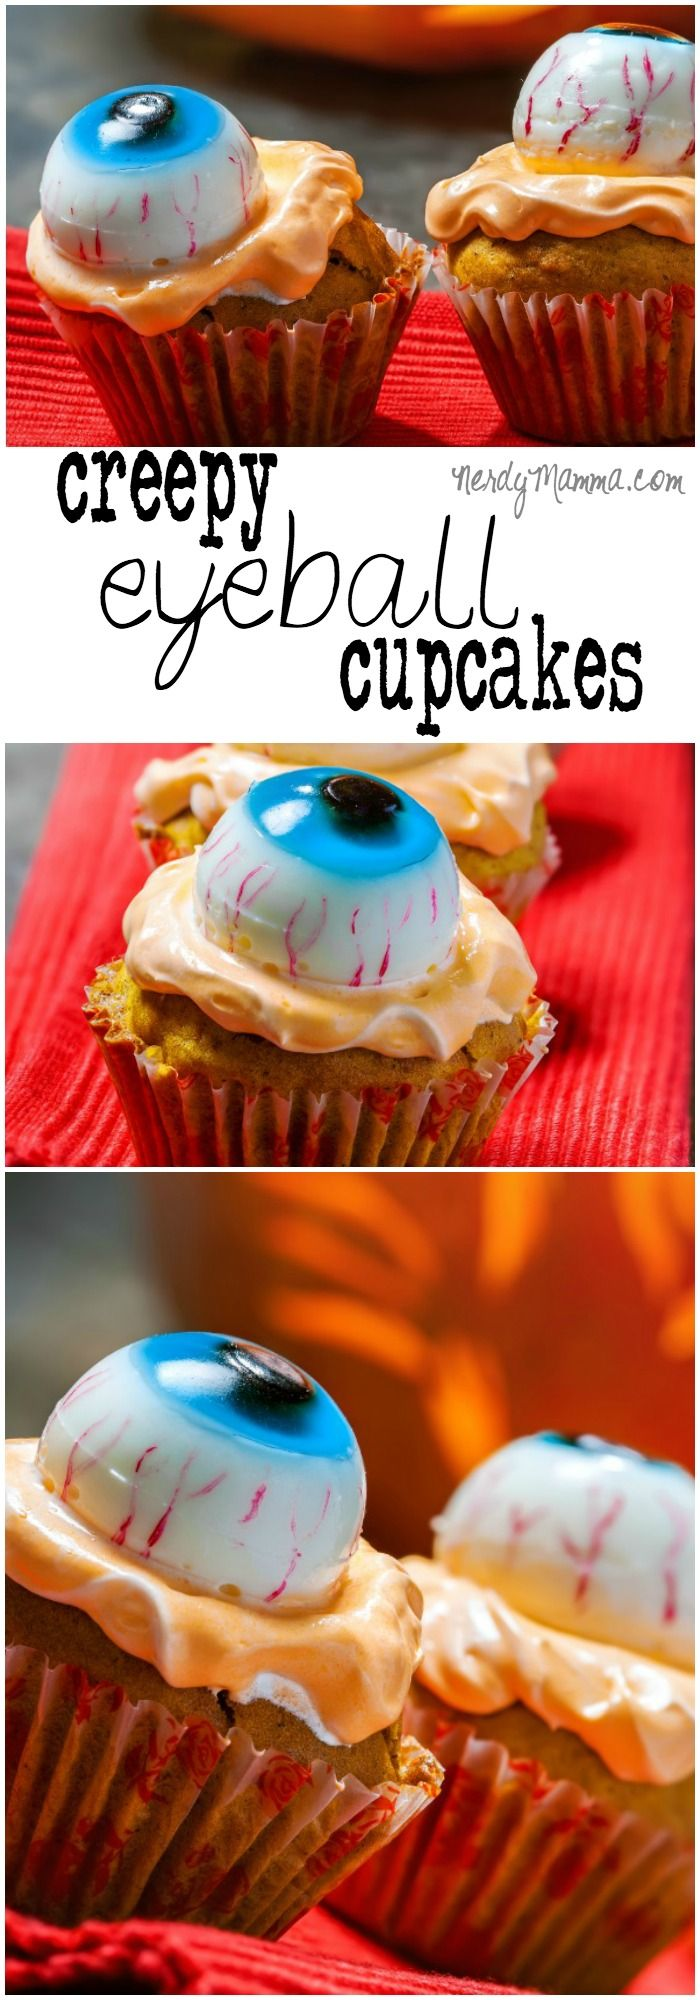 792 best images about Fun Food Ideas on Pinterest   Chocolate chip ...